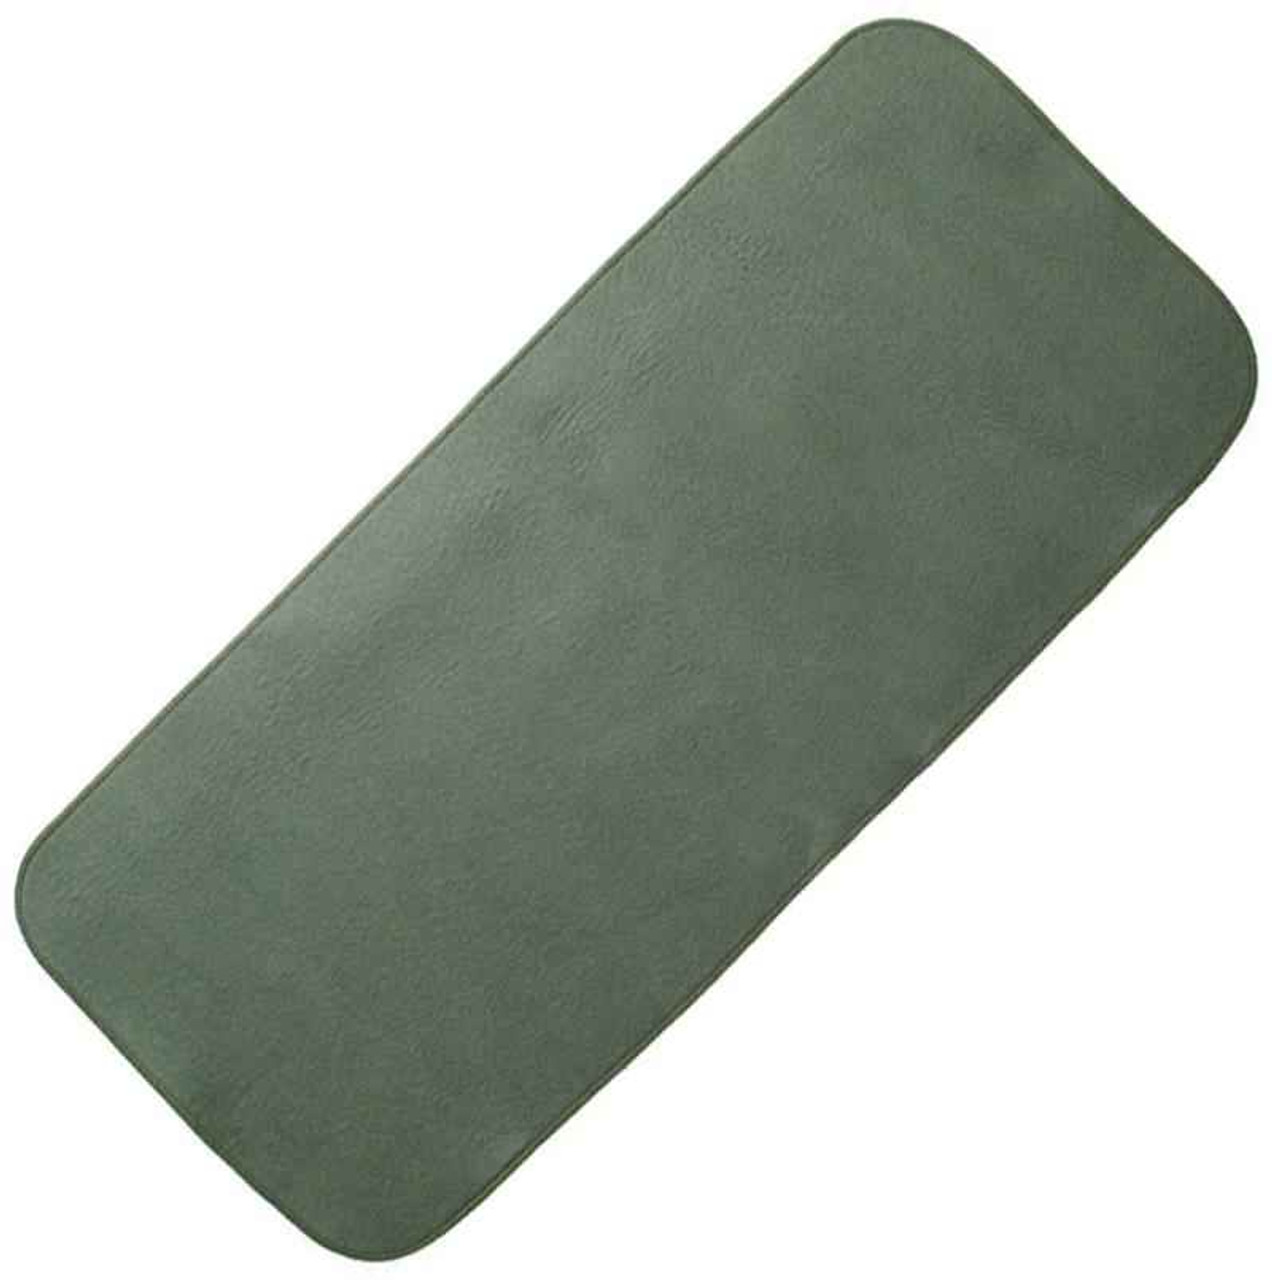 "ABKT AB055 Tac Tactical Gun Cleaning Mat - 28"" x 12""., Olive Green"